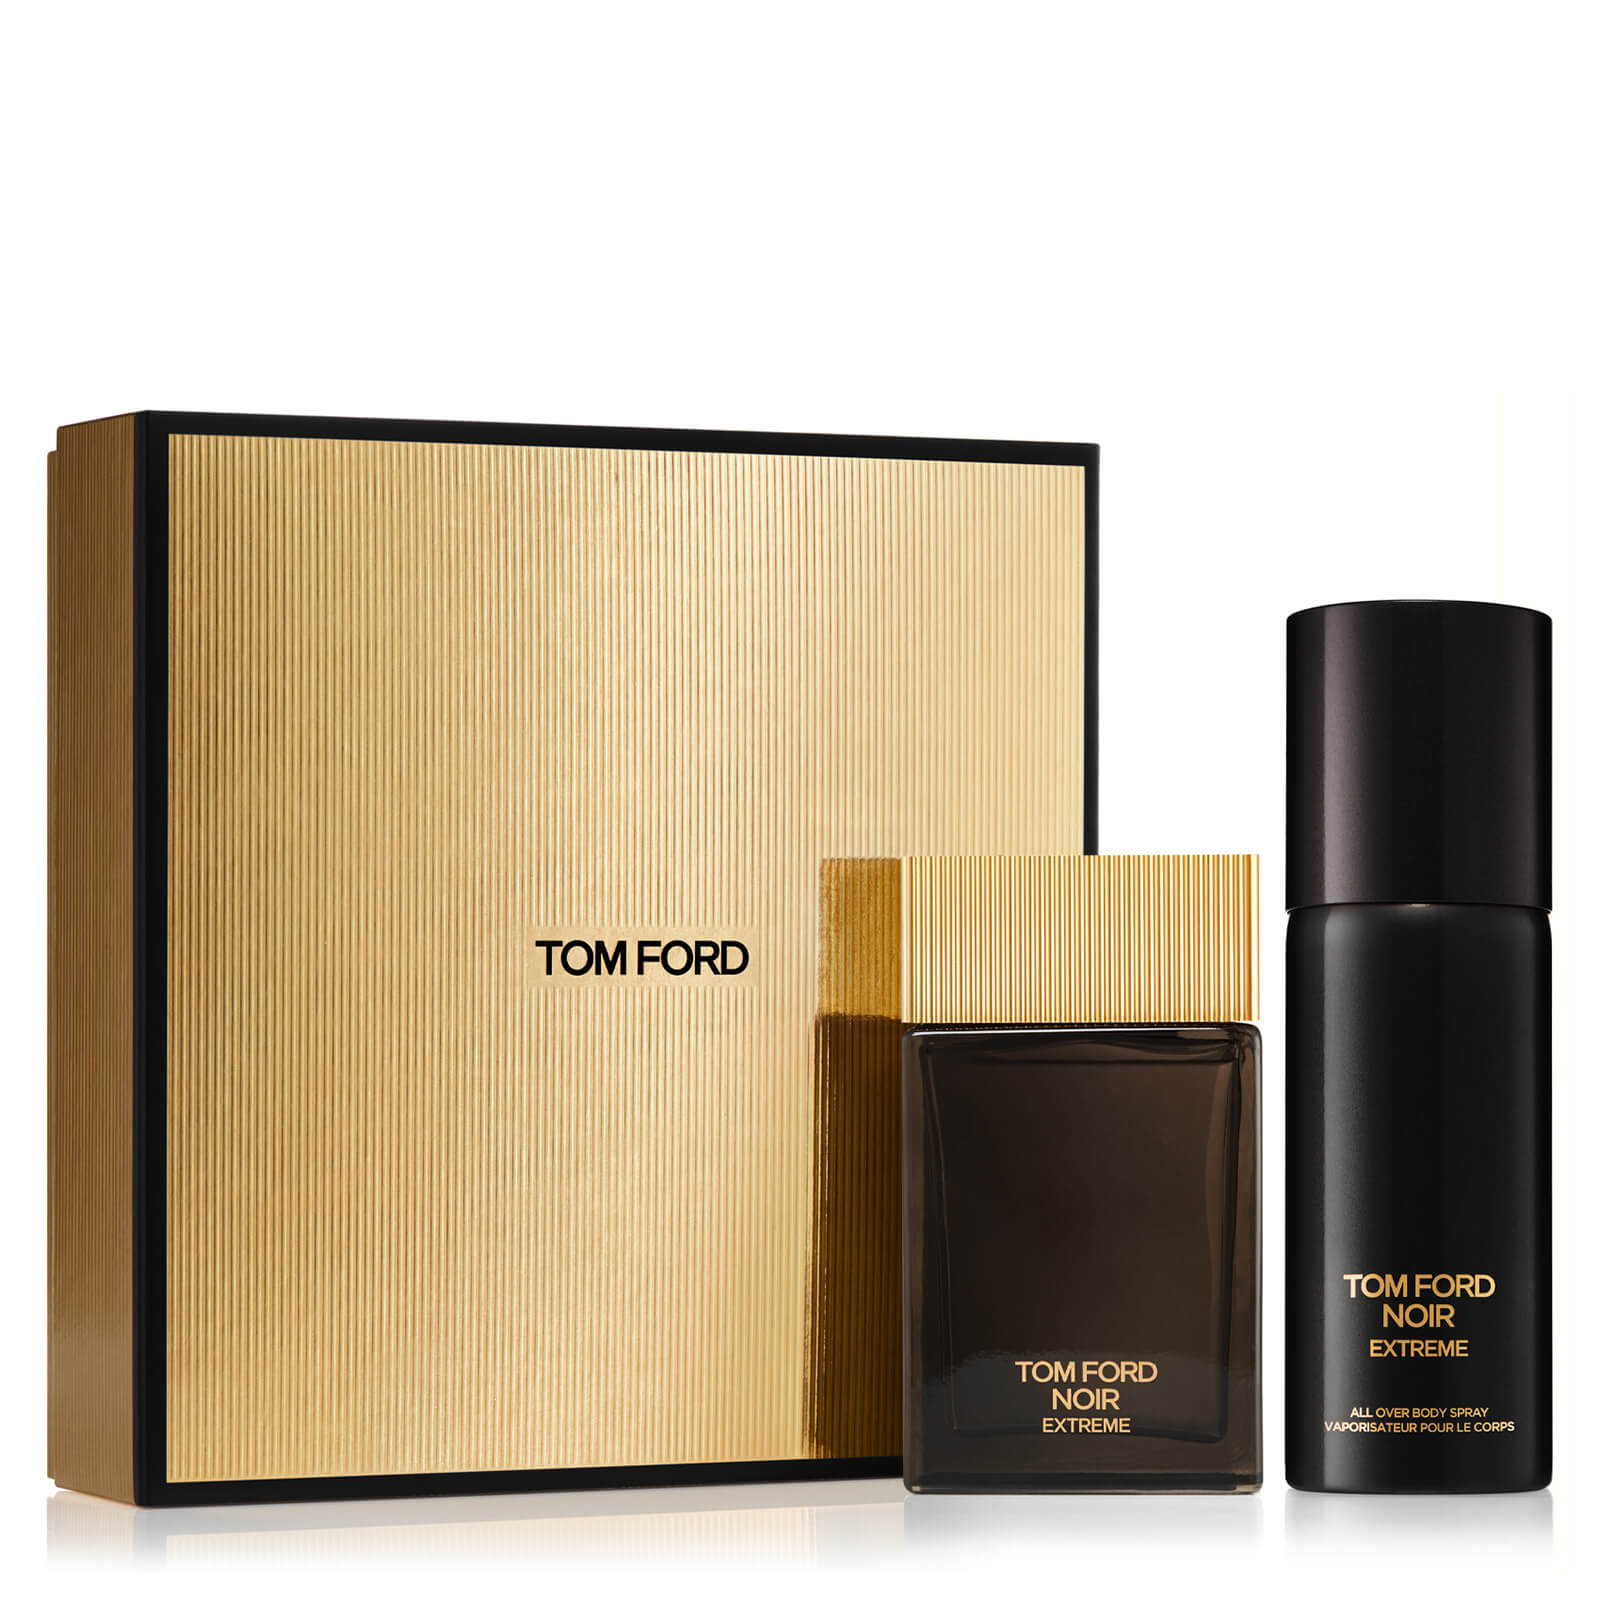 Tom Ford Noir Extreme Collection Lookfantastic